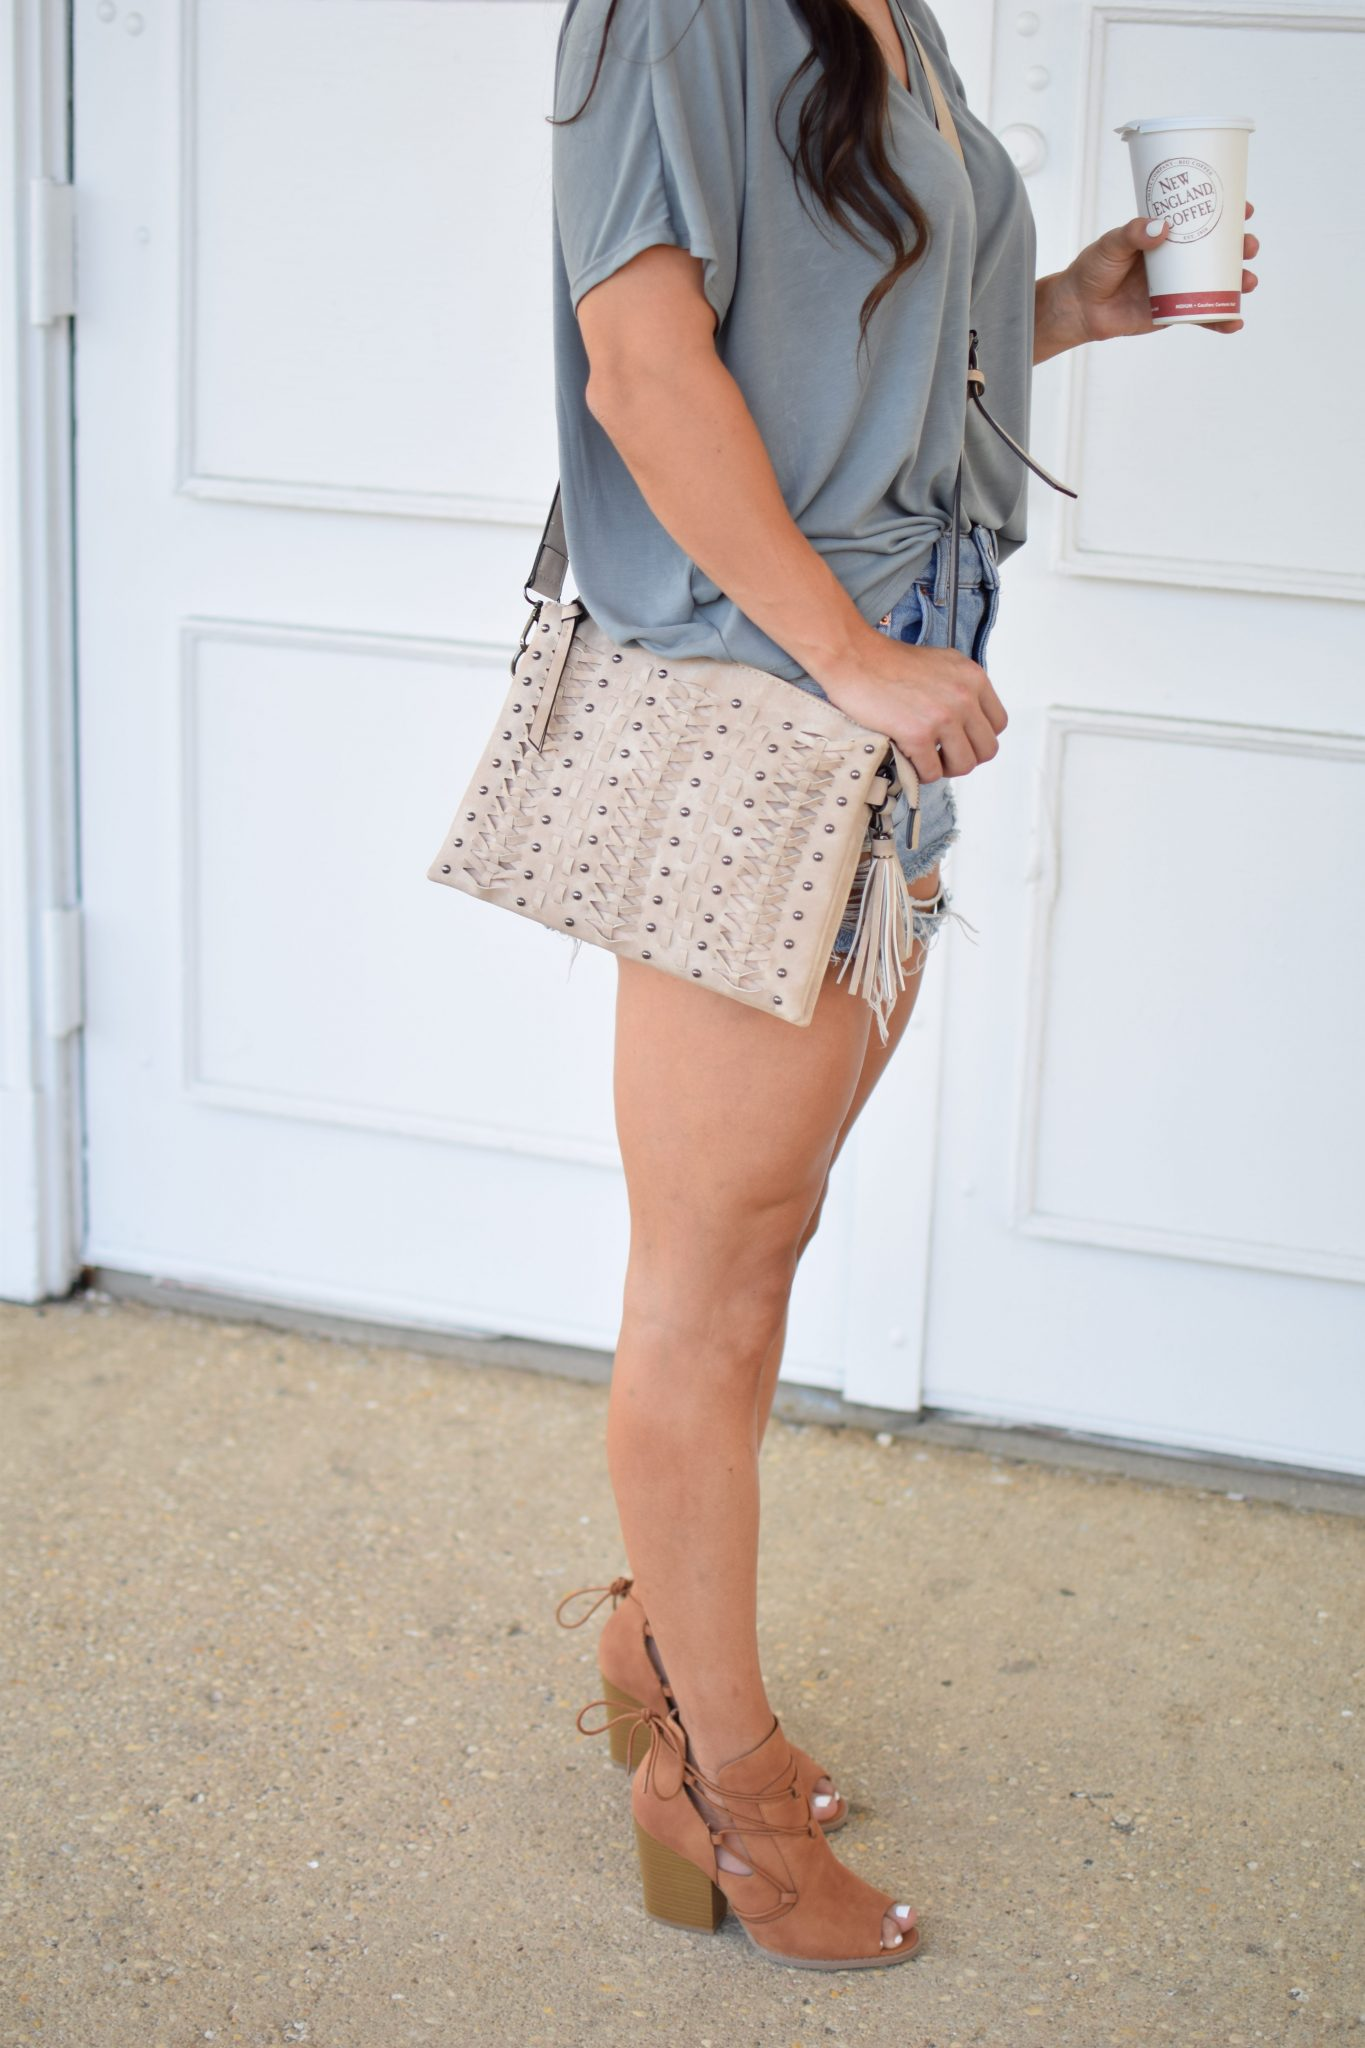 Shoetopia Booties styled by popular New Jersey style blogger Fit Mommy in Heels